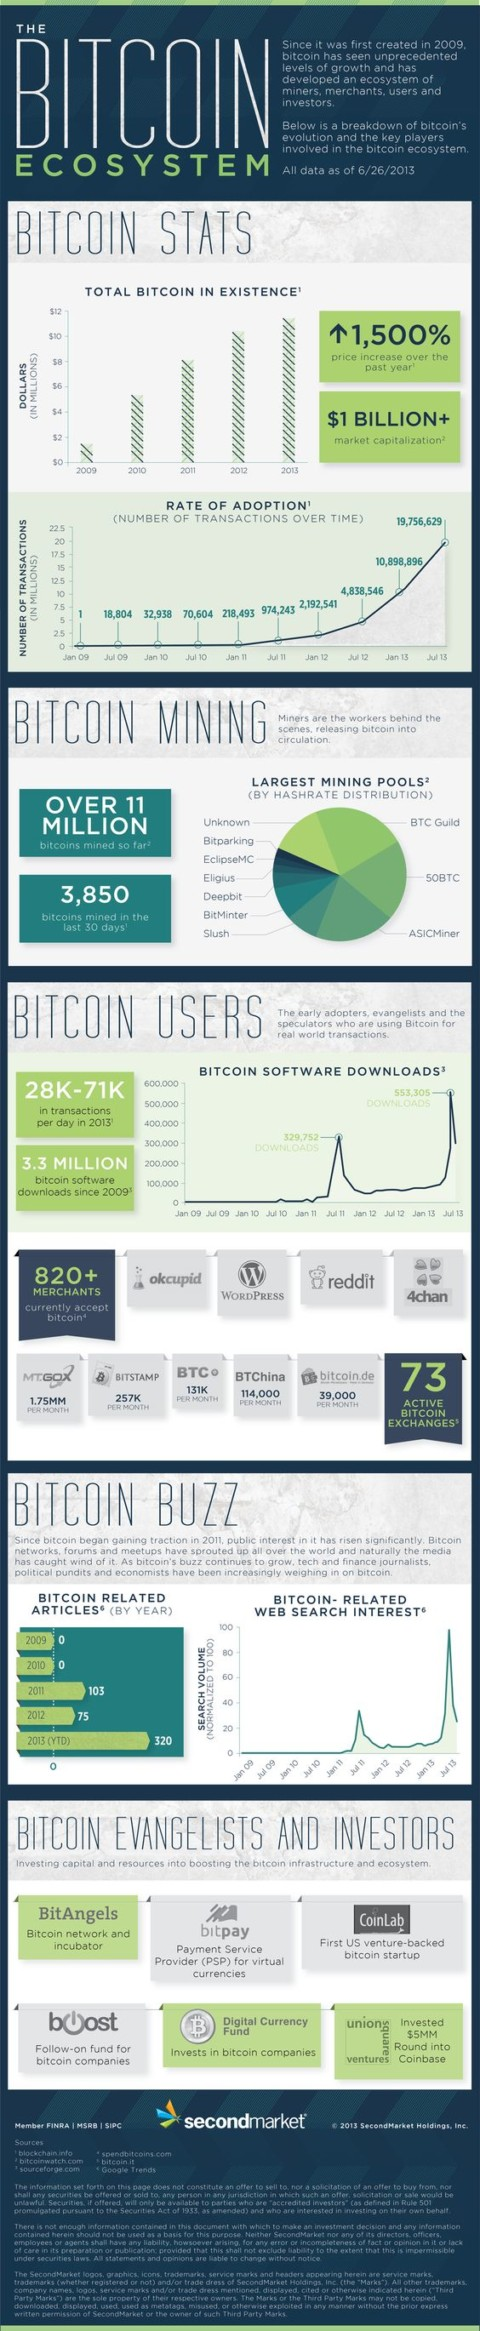 The Bitcoin Ecosystem